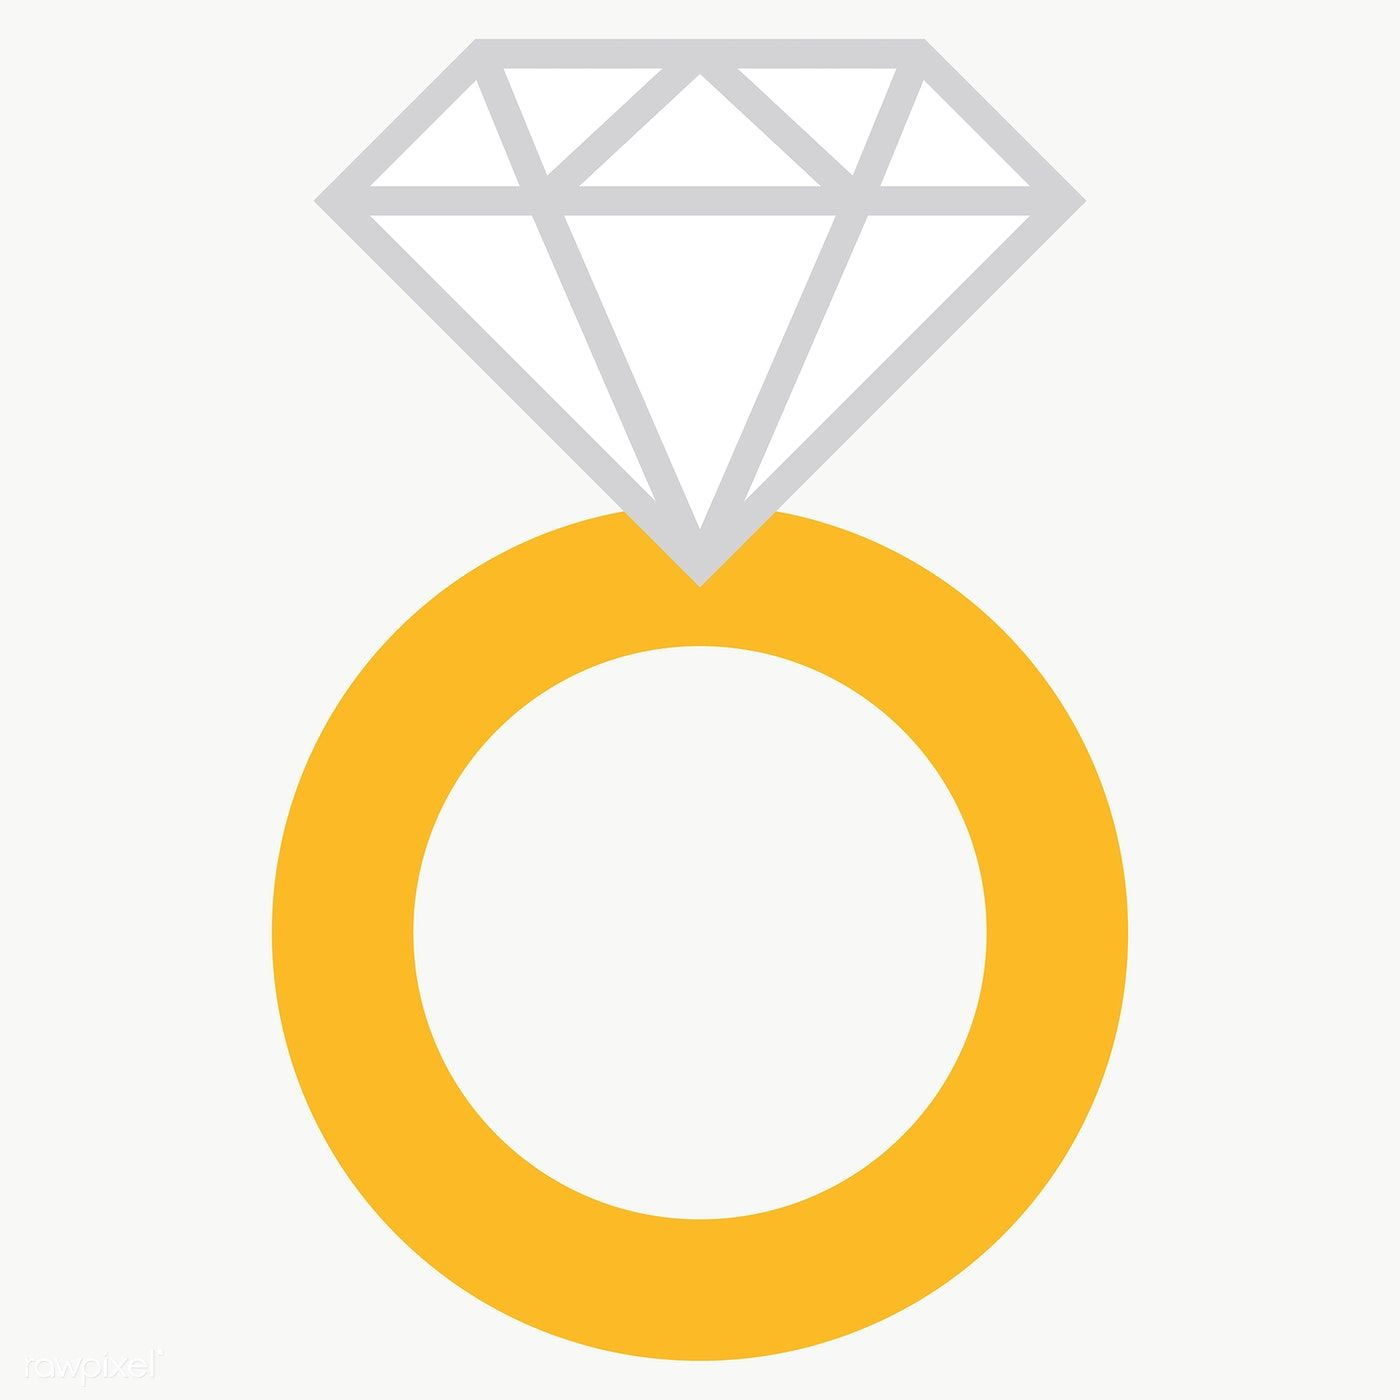 Diamond Ring Design Element Transparent Png Free Image By Rawpixel Com Chayanit Diamond Rings Design Wedding Ring Graphic Engagement Icon